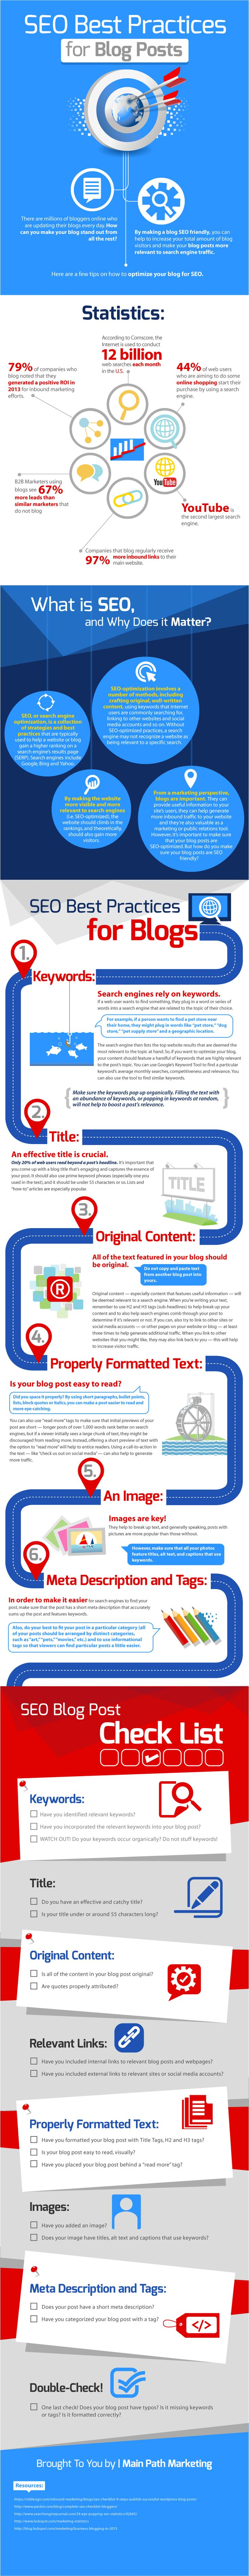 SEO Best Practices for Blog Posts #infographic #SEO #Blogging